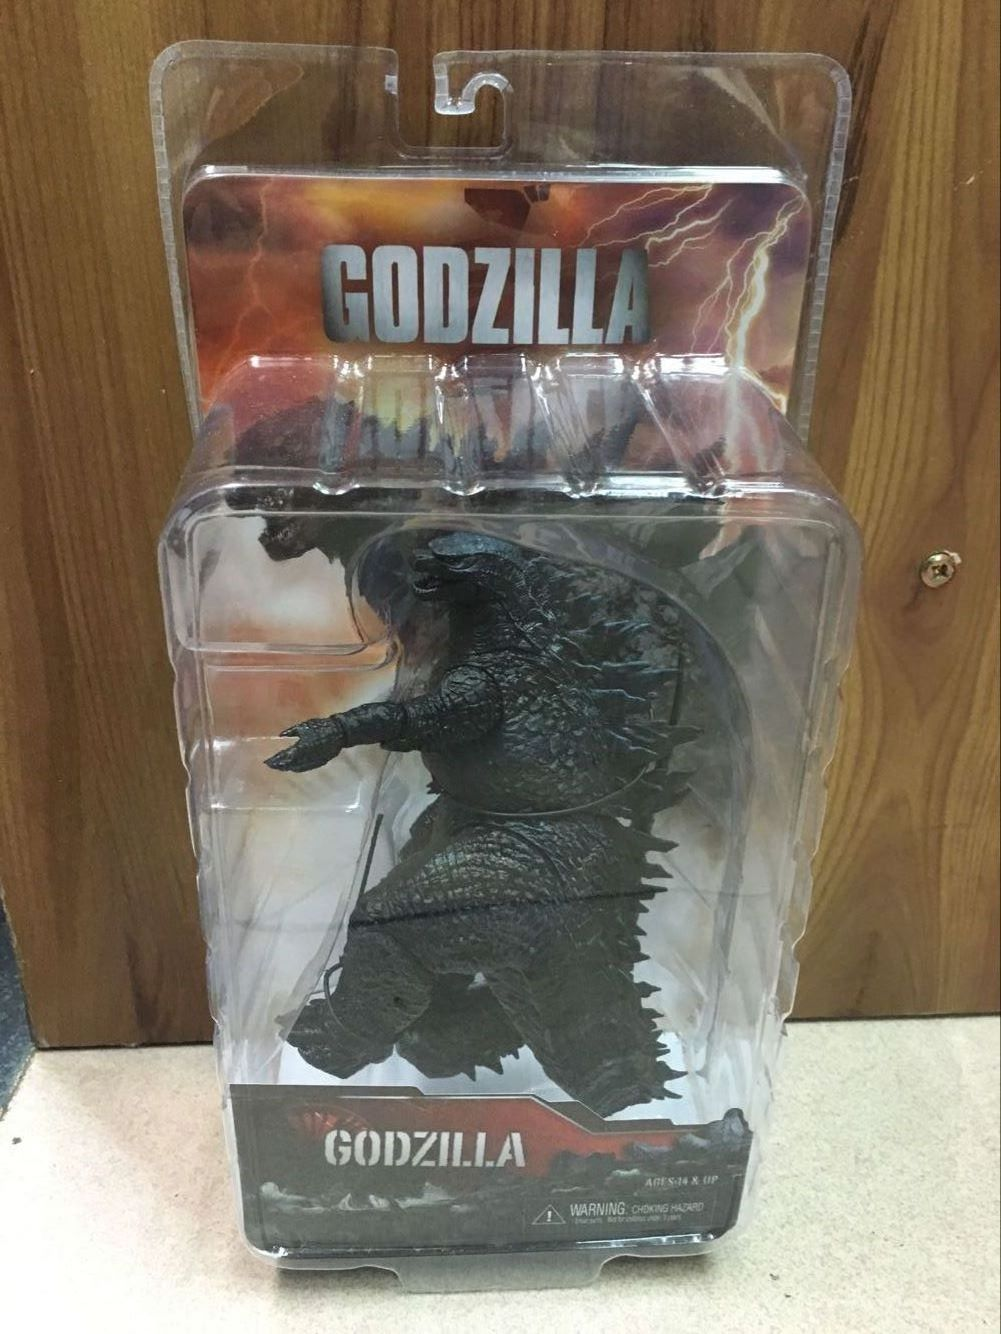 Free Shipping NECA Godzilla Movie 2014 2001 1954 PVC Action Figure Classic Collectible Model Toy KT3380 neca epic marvel deadpool ultimate collectible 1 4 scale action figure model toy 16 45cm ems free shipping